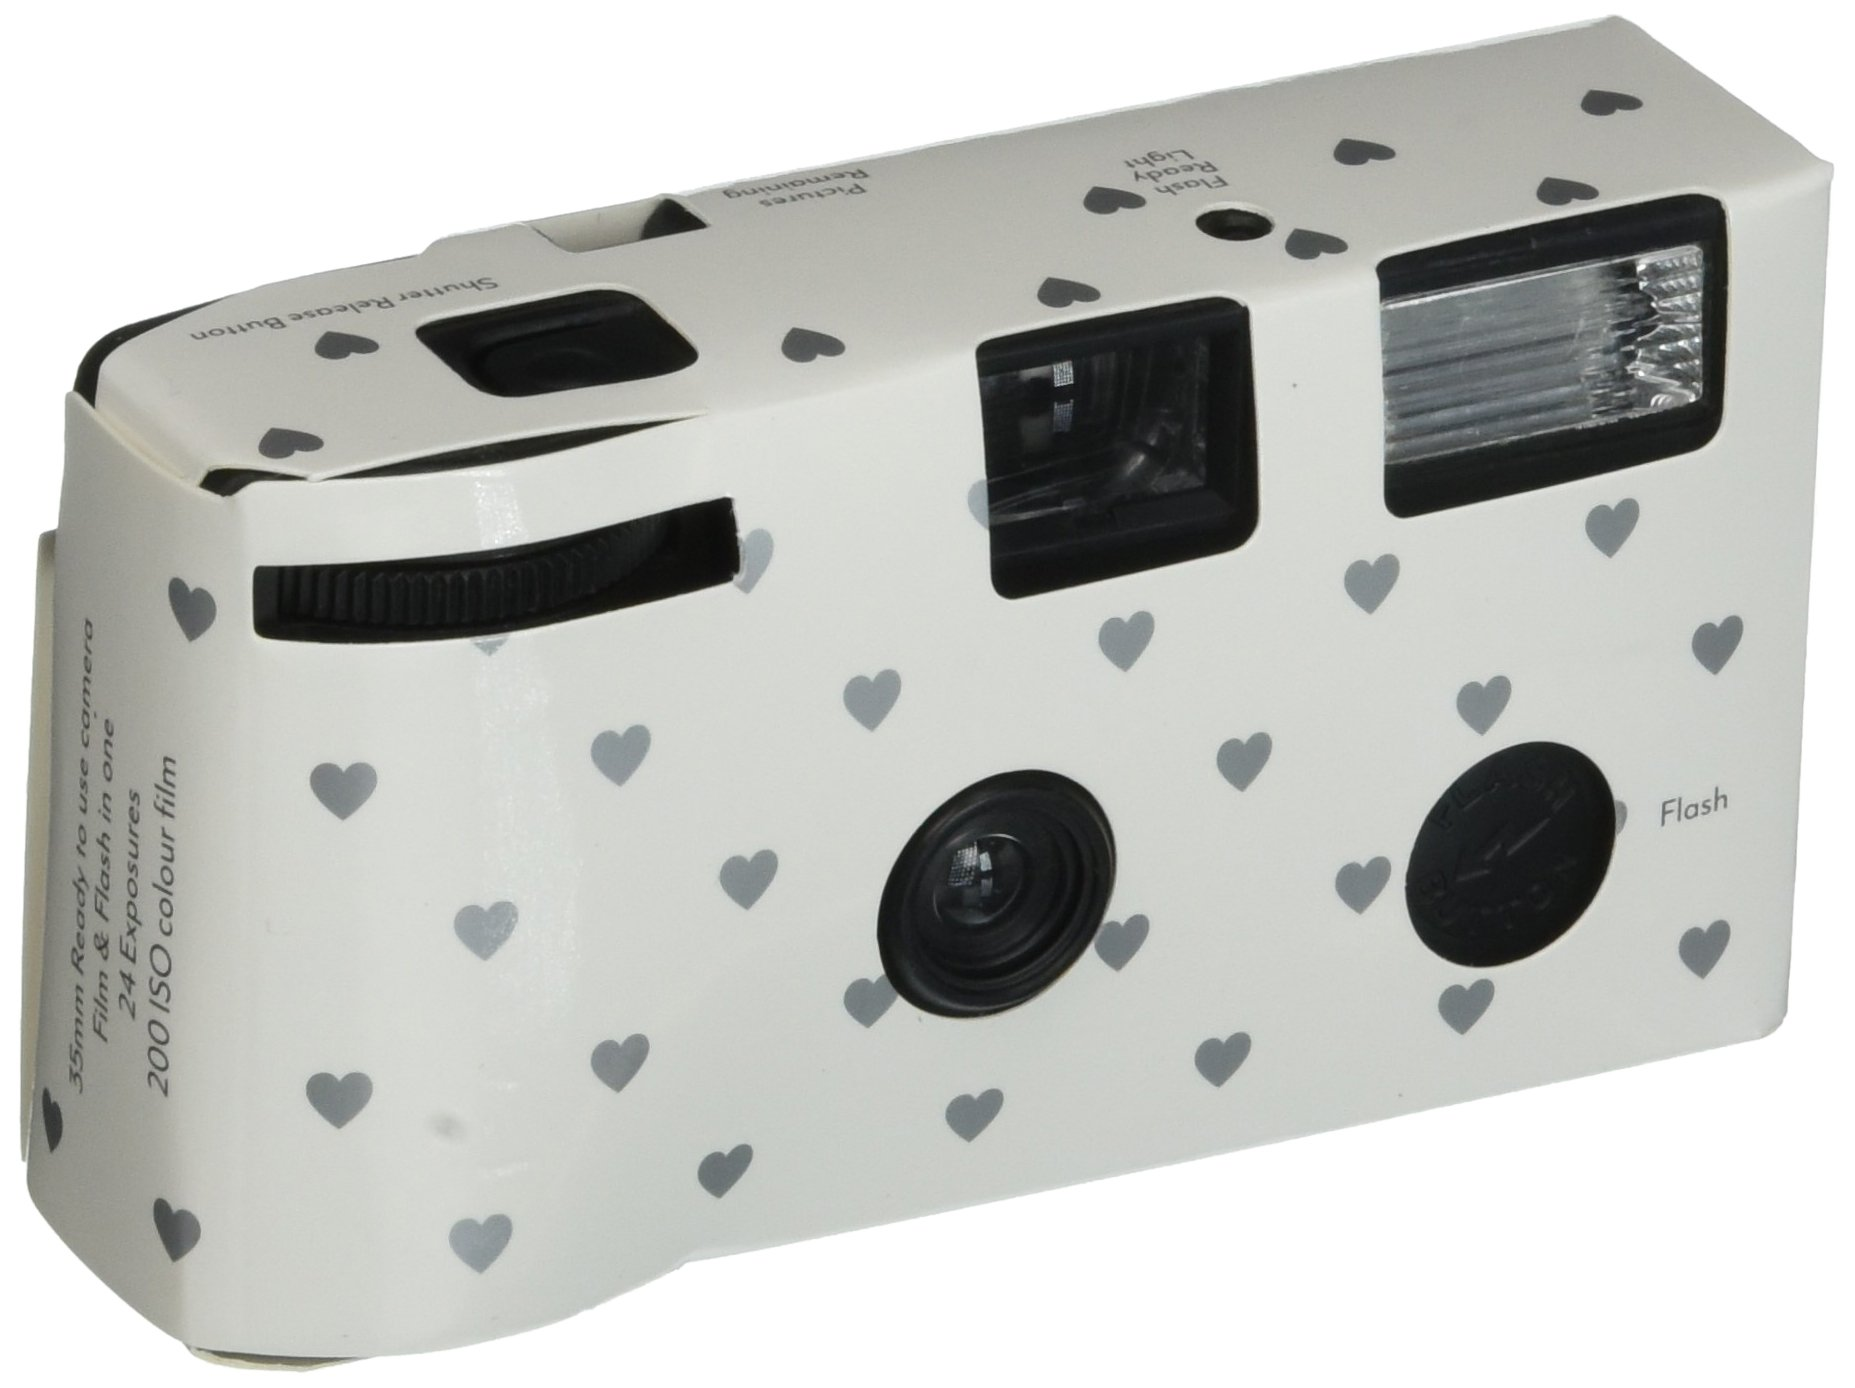 Single Use Camera - Silver Hearts Design - White by Weddingstar Inc.